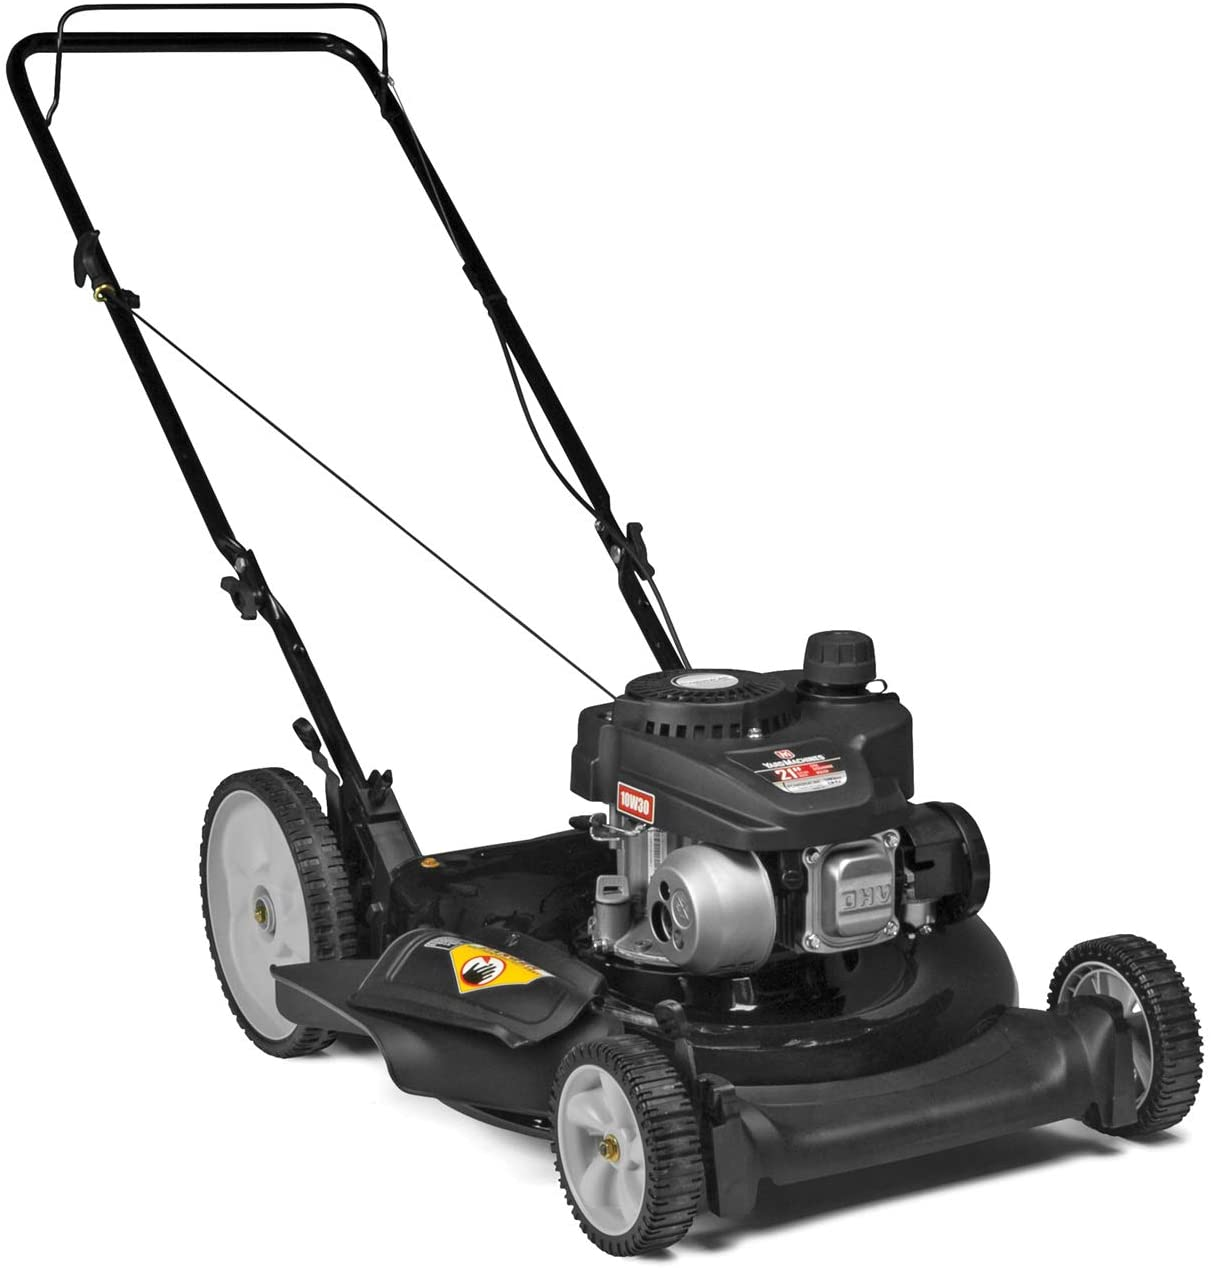 Yard Machines 140cc Walk-Behind Push Lawn Mower